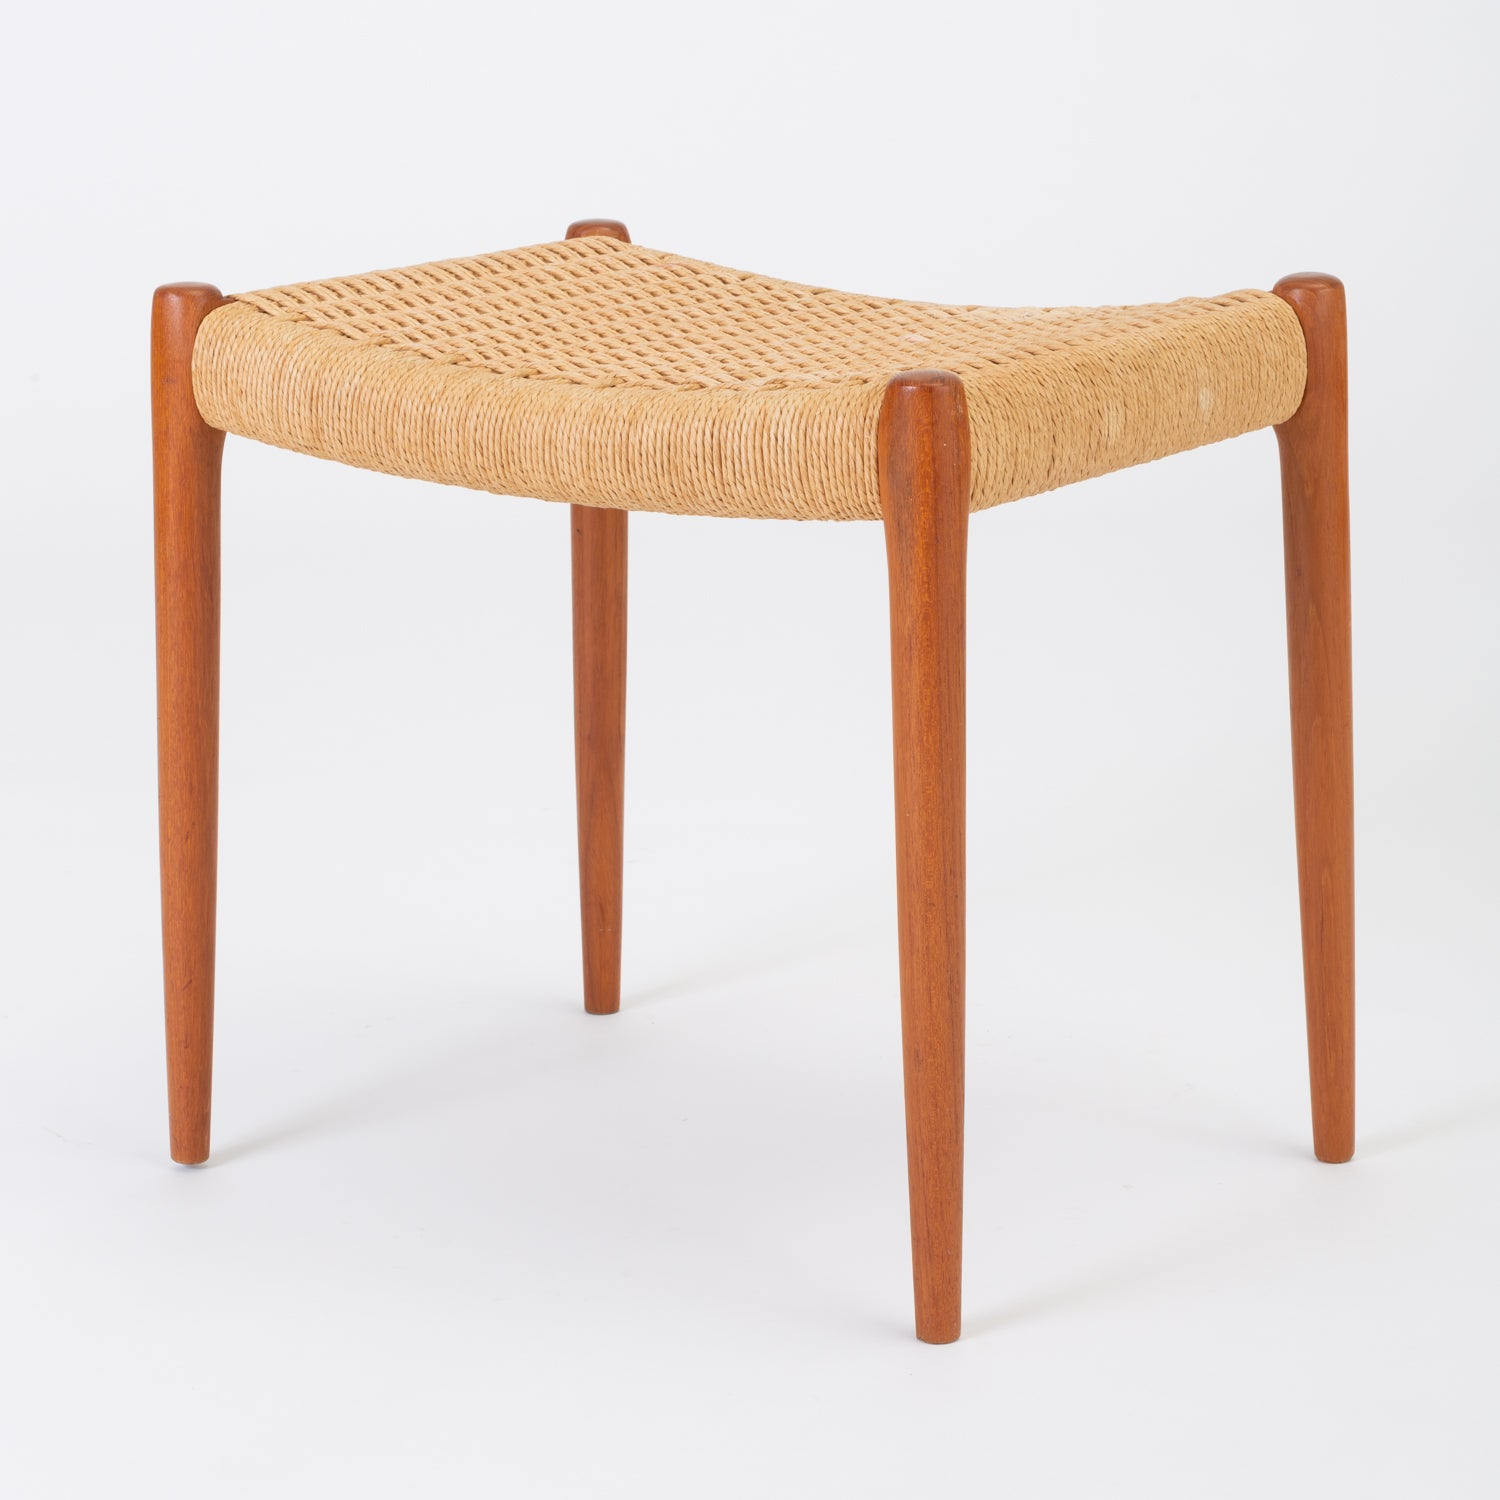 Teak Model 80A Ottoman by Niels Møller with Danish Cord Seat